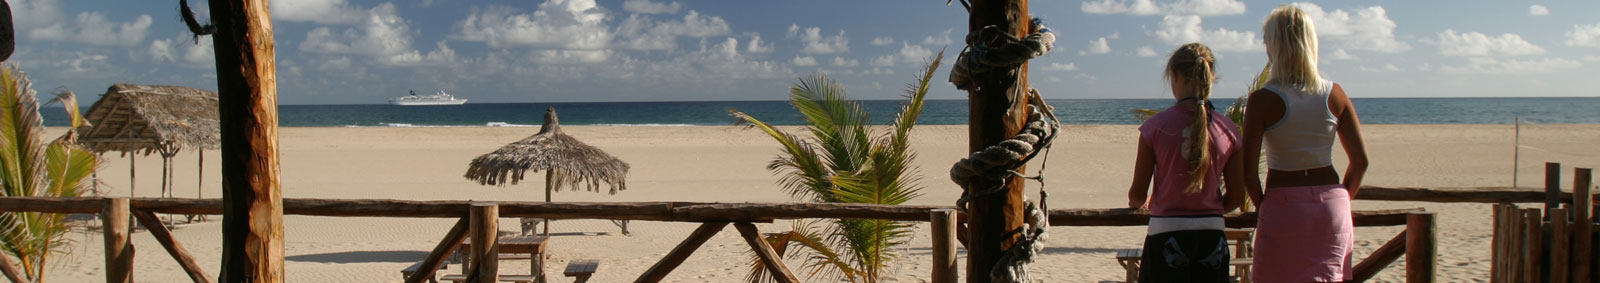 Barra Resorts Mozambique